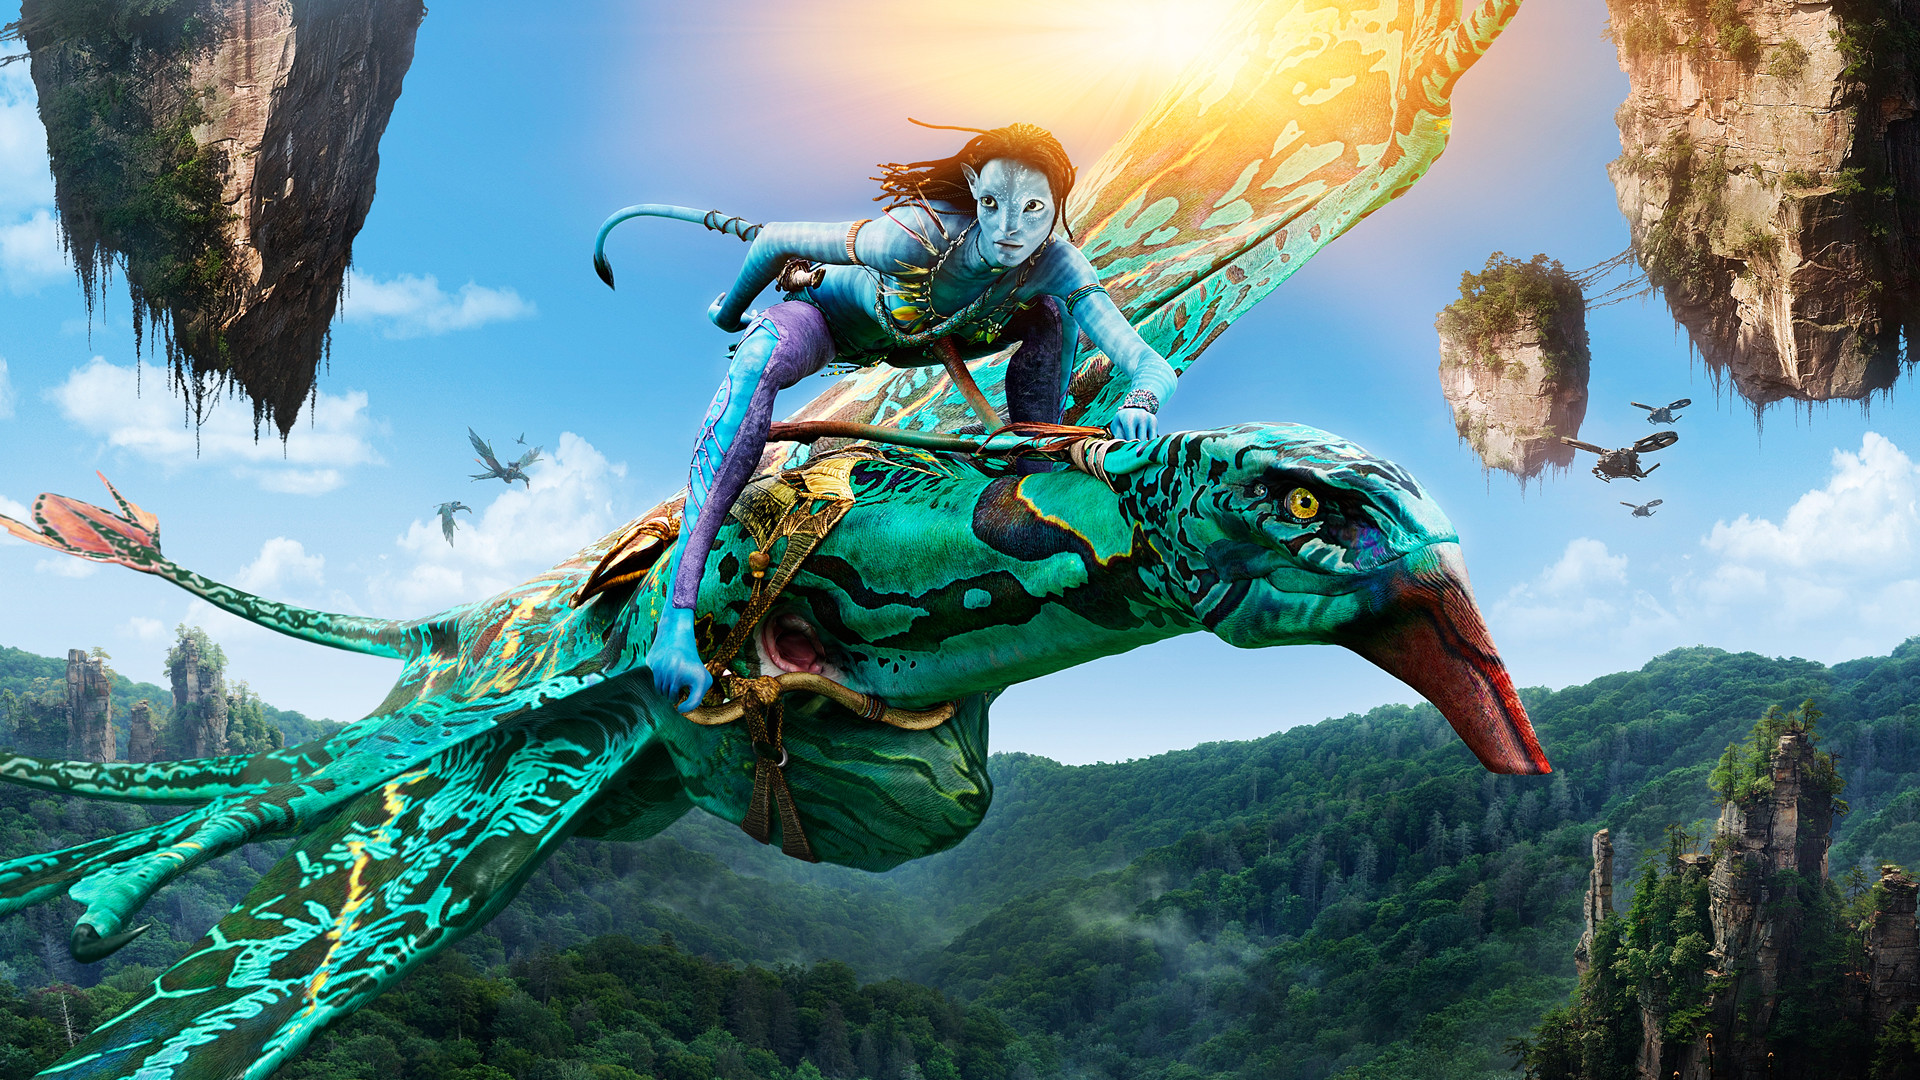 Avatar Hd Wallpapers 1080p 65 Images